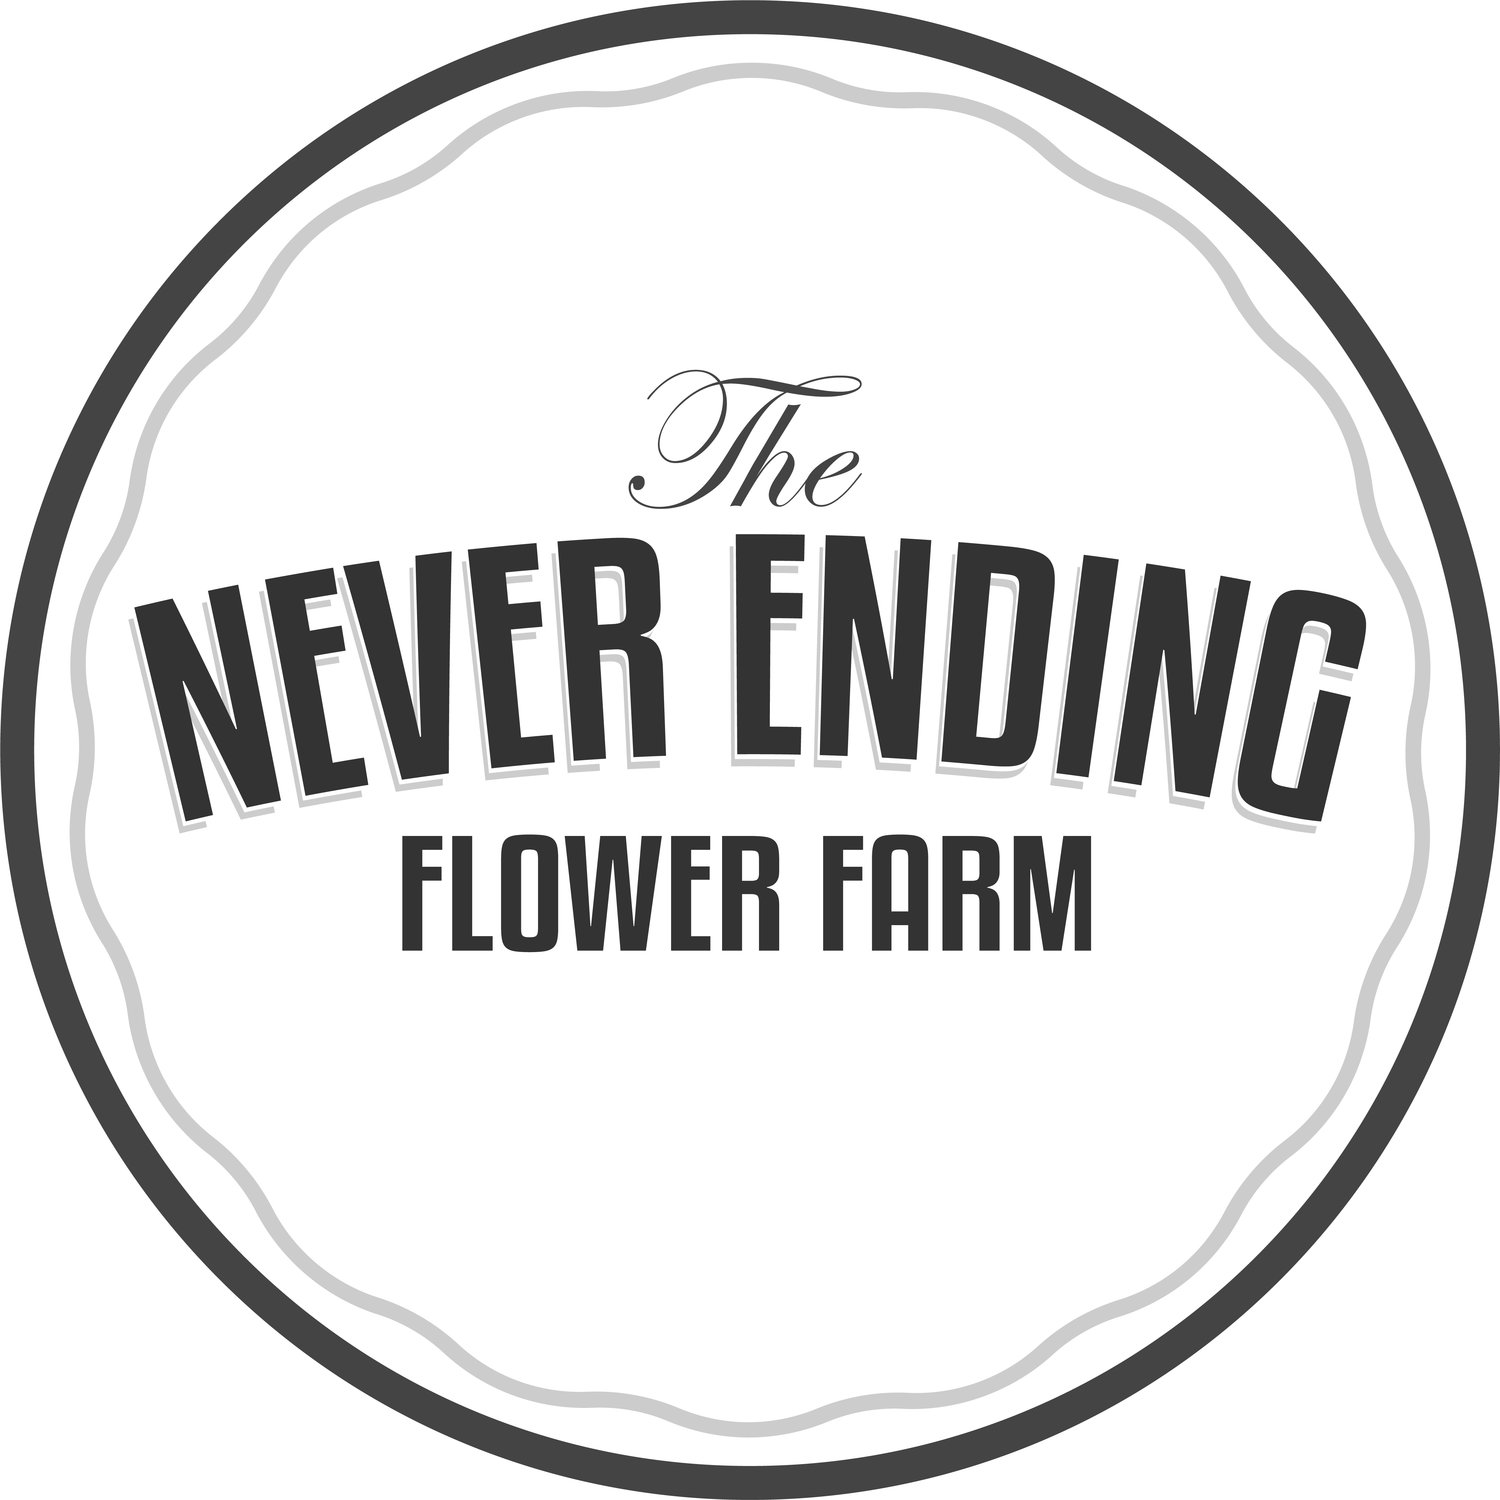 The Never Ending Flower Farm